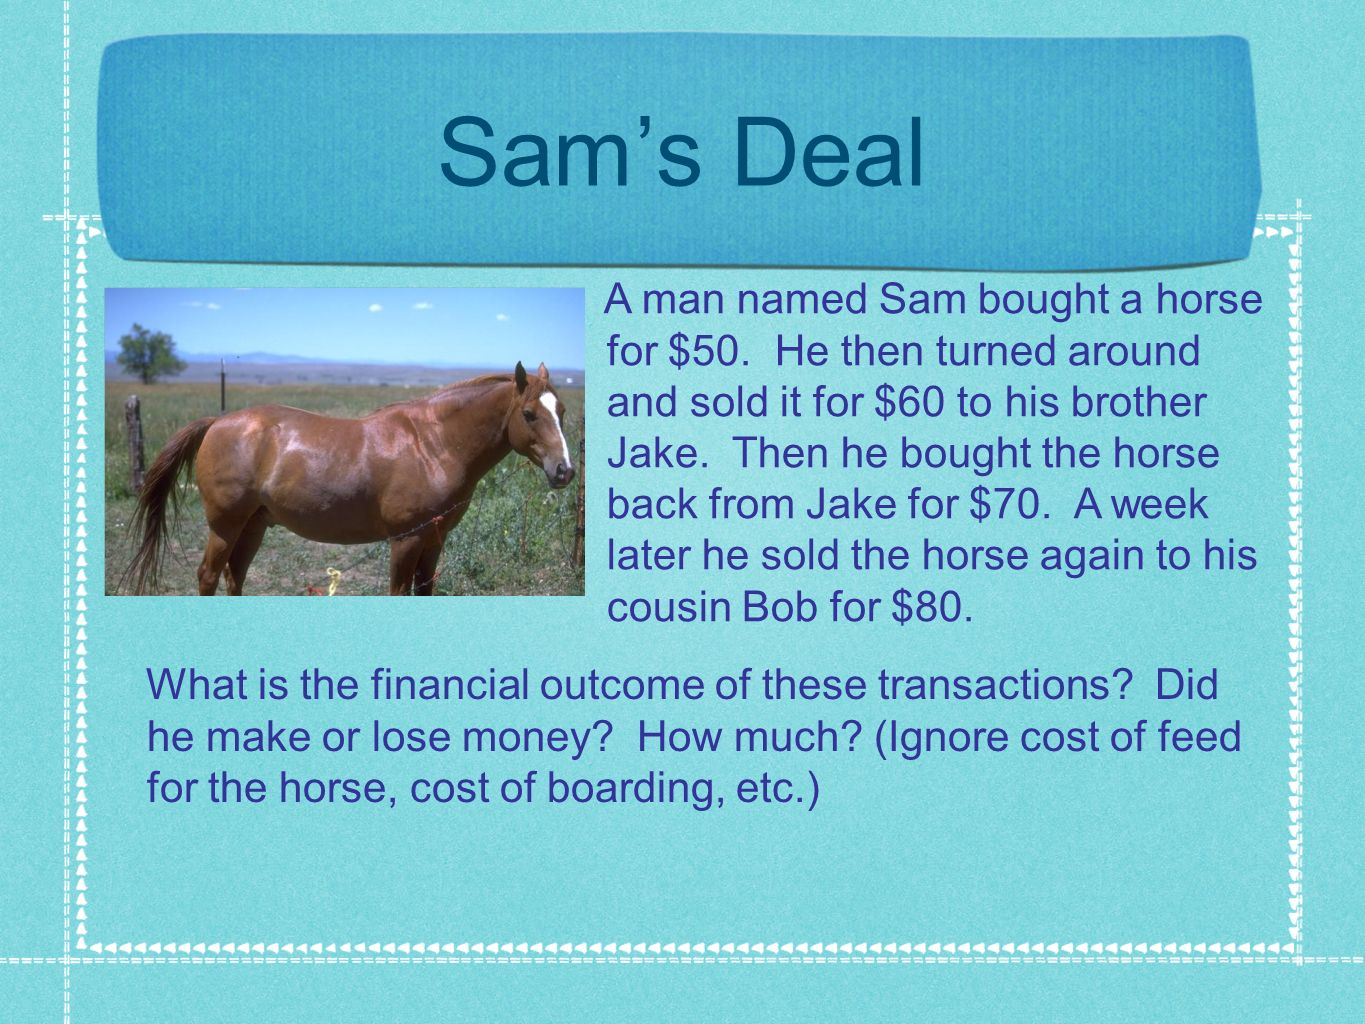 Sams Deal A man named Sam bought a horse for $50. He then turned around and sold it for $60 to his brother Jake. Then he bought the horse back from Ja